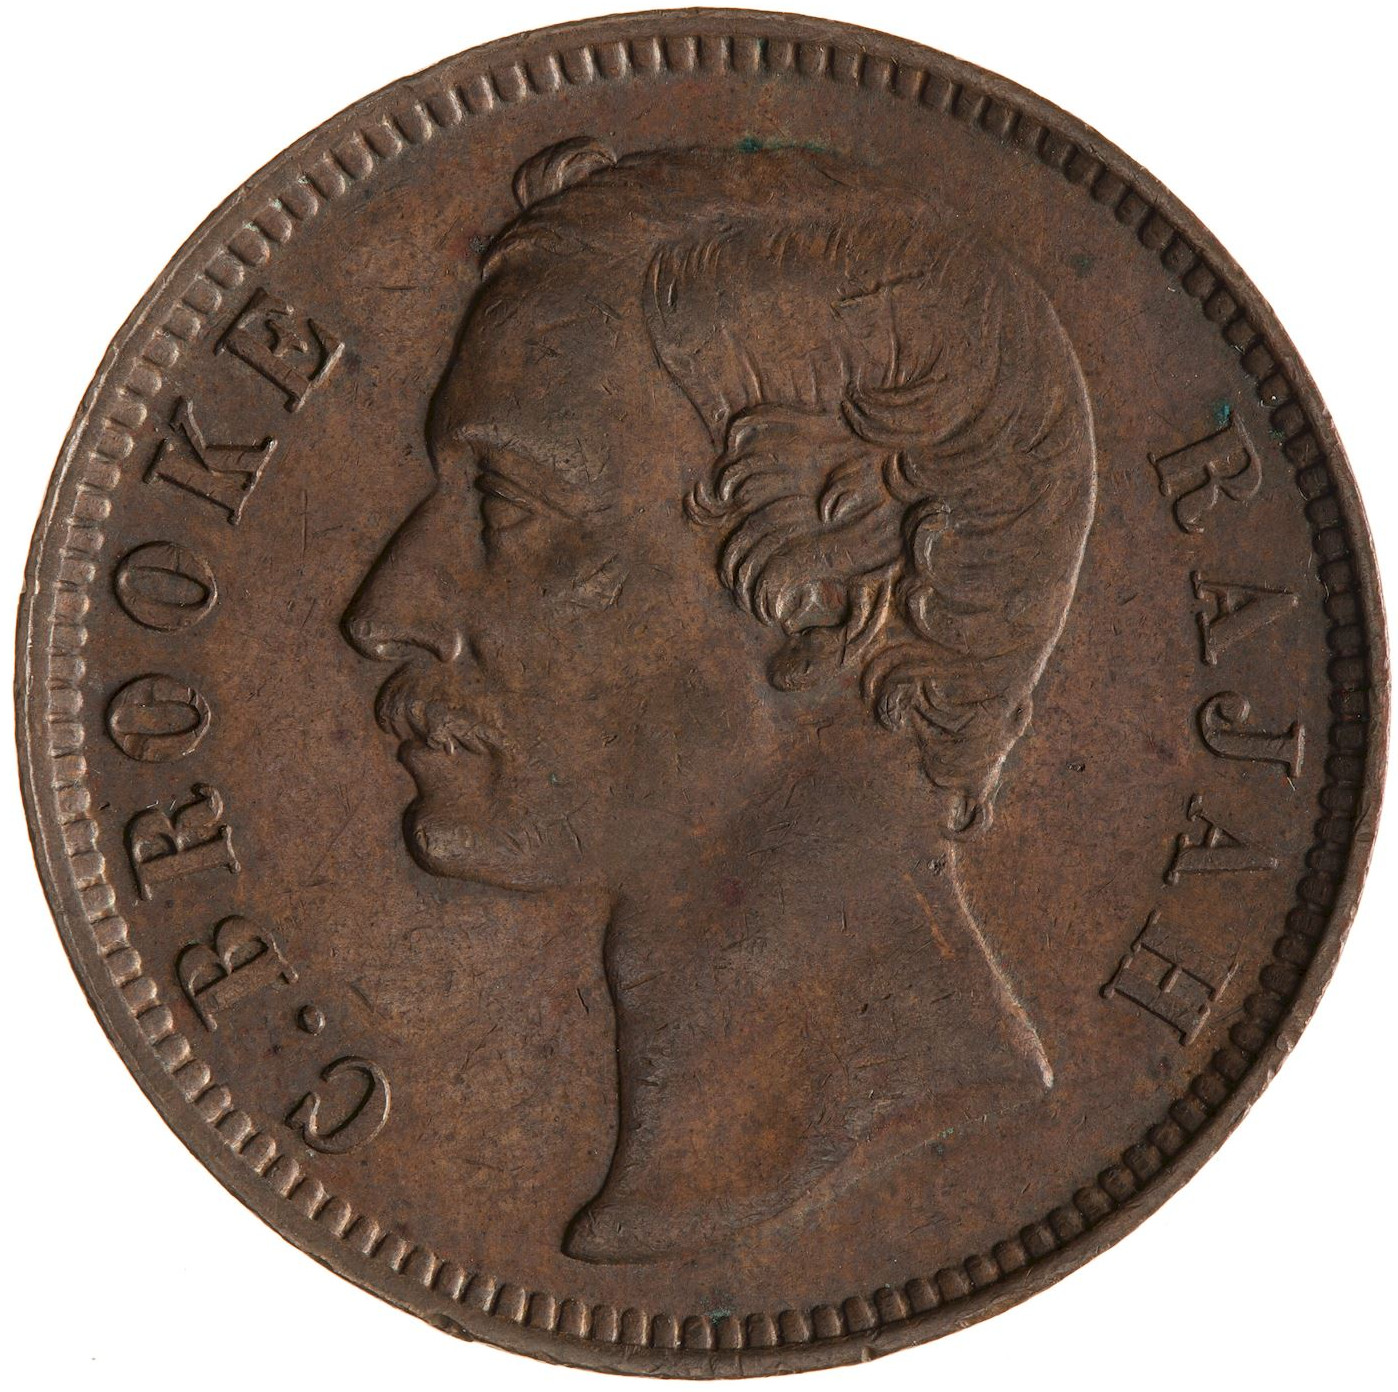 One Cent 1888: Photo Coin - 1 Cent, Sarawak, 1888